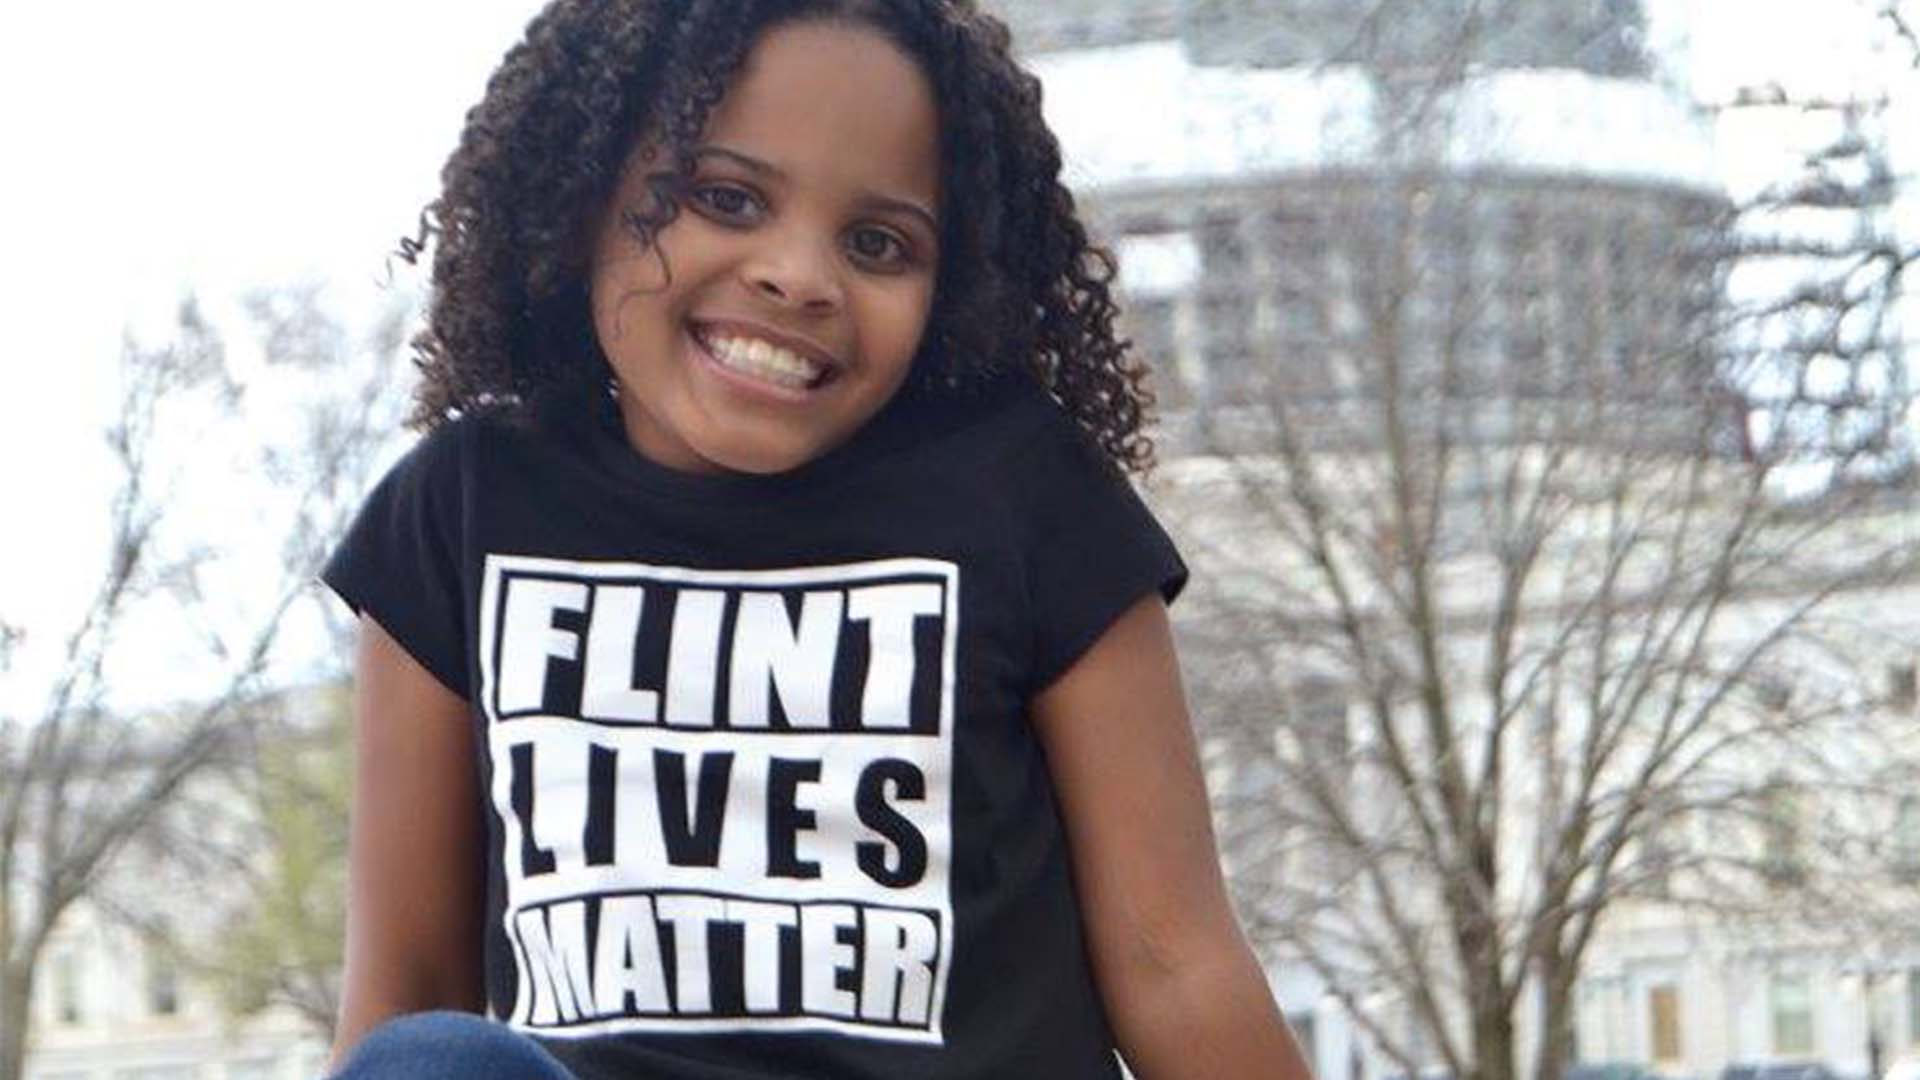 The 13 year old activist that took the Flint water crisis into her own hands - Yahoo Sports